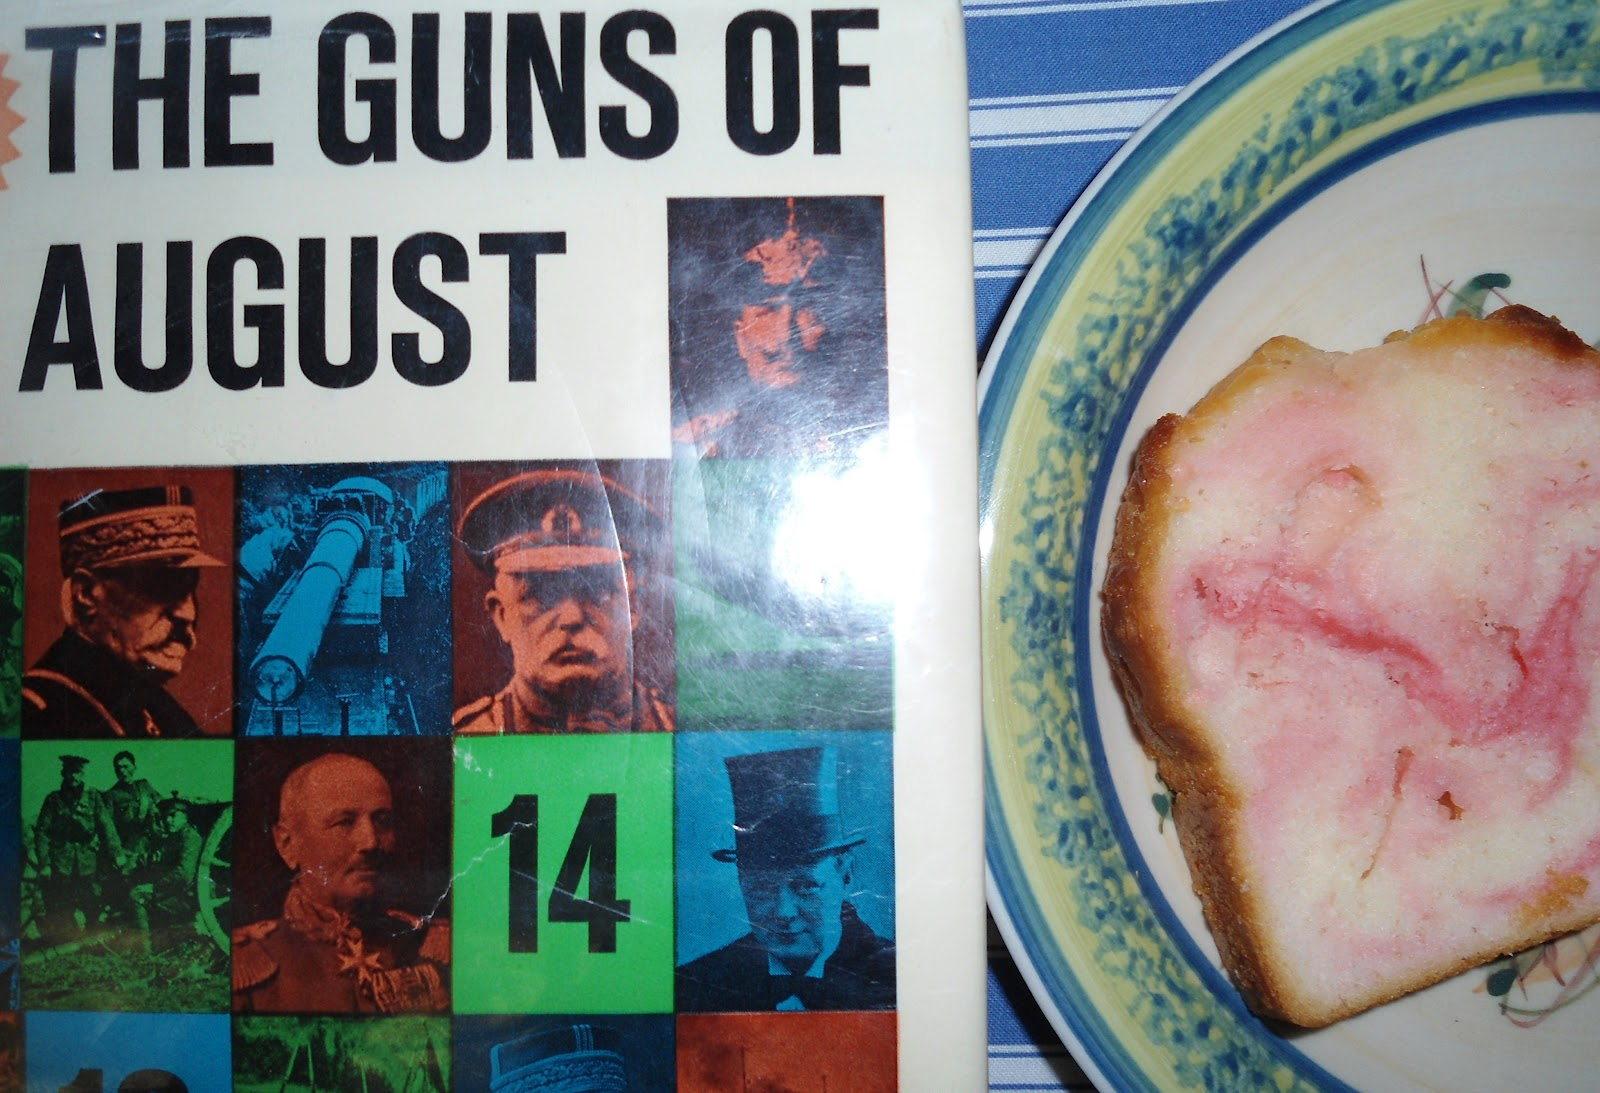 an analysis of countries involvement in the war in the guns of august by barbara tuchman The guns of august (1962), also published as august 1914, is a volume of history by barbara tuchman it is centered around the first month of world war i after.